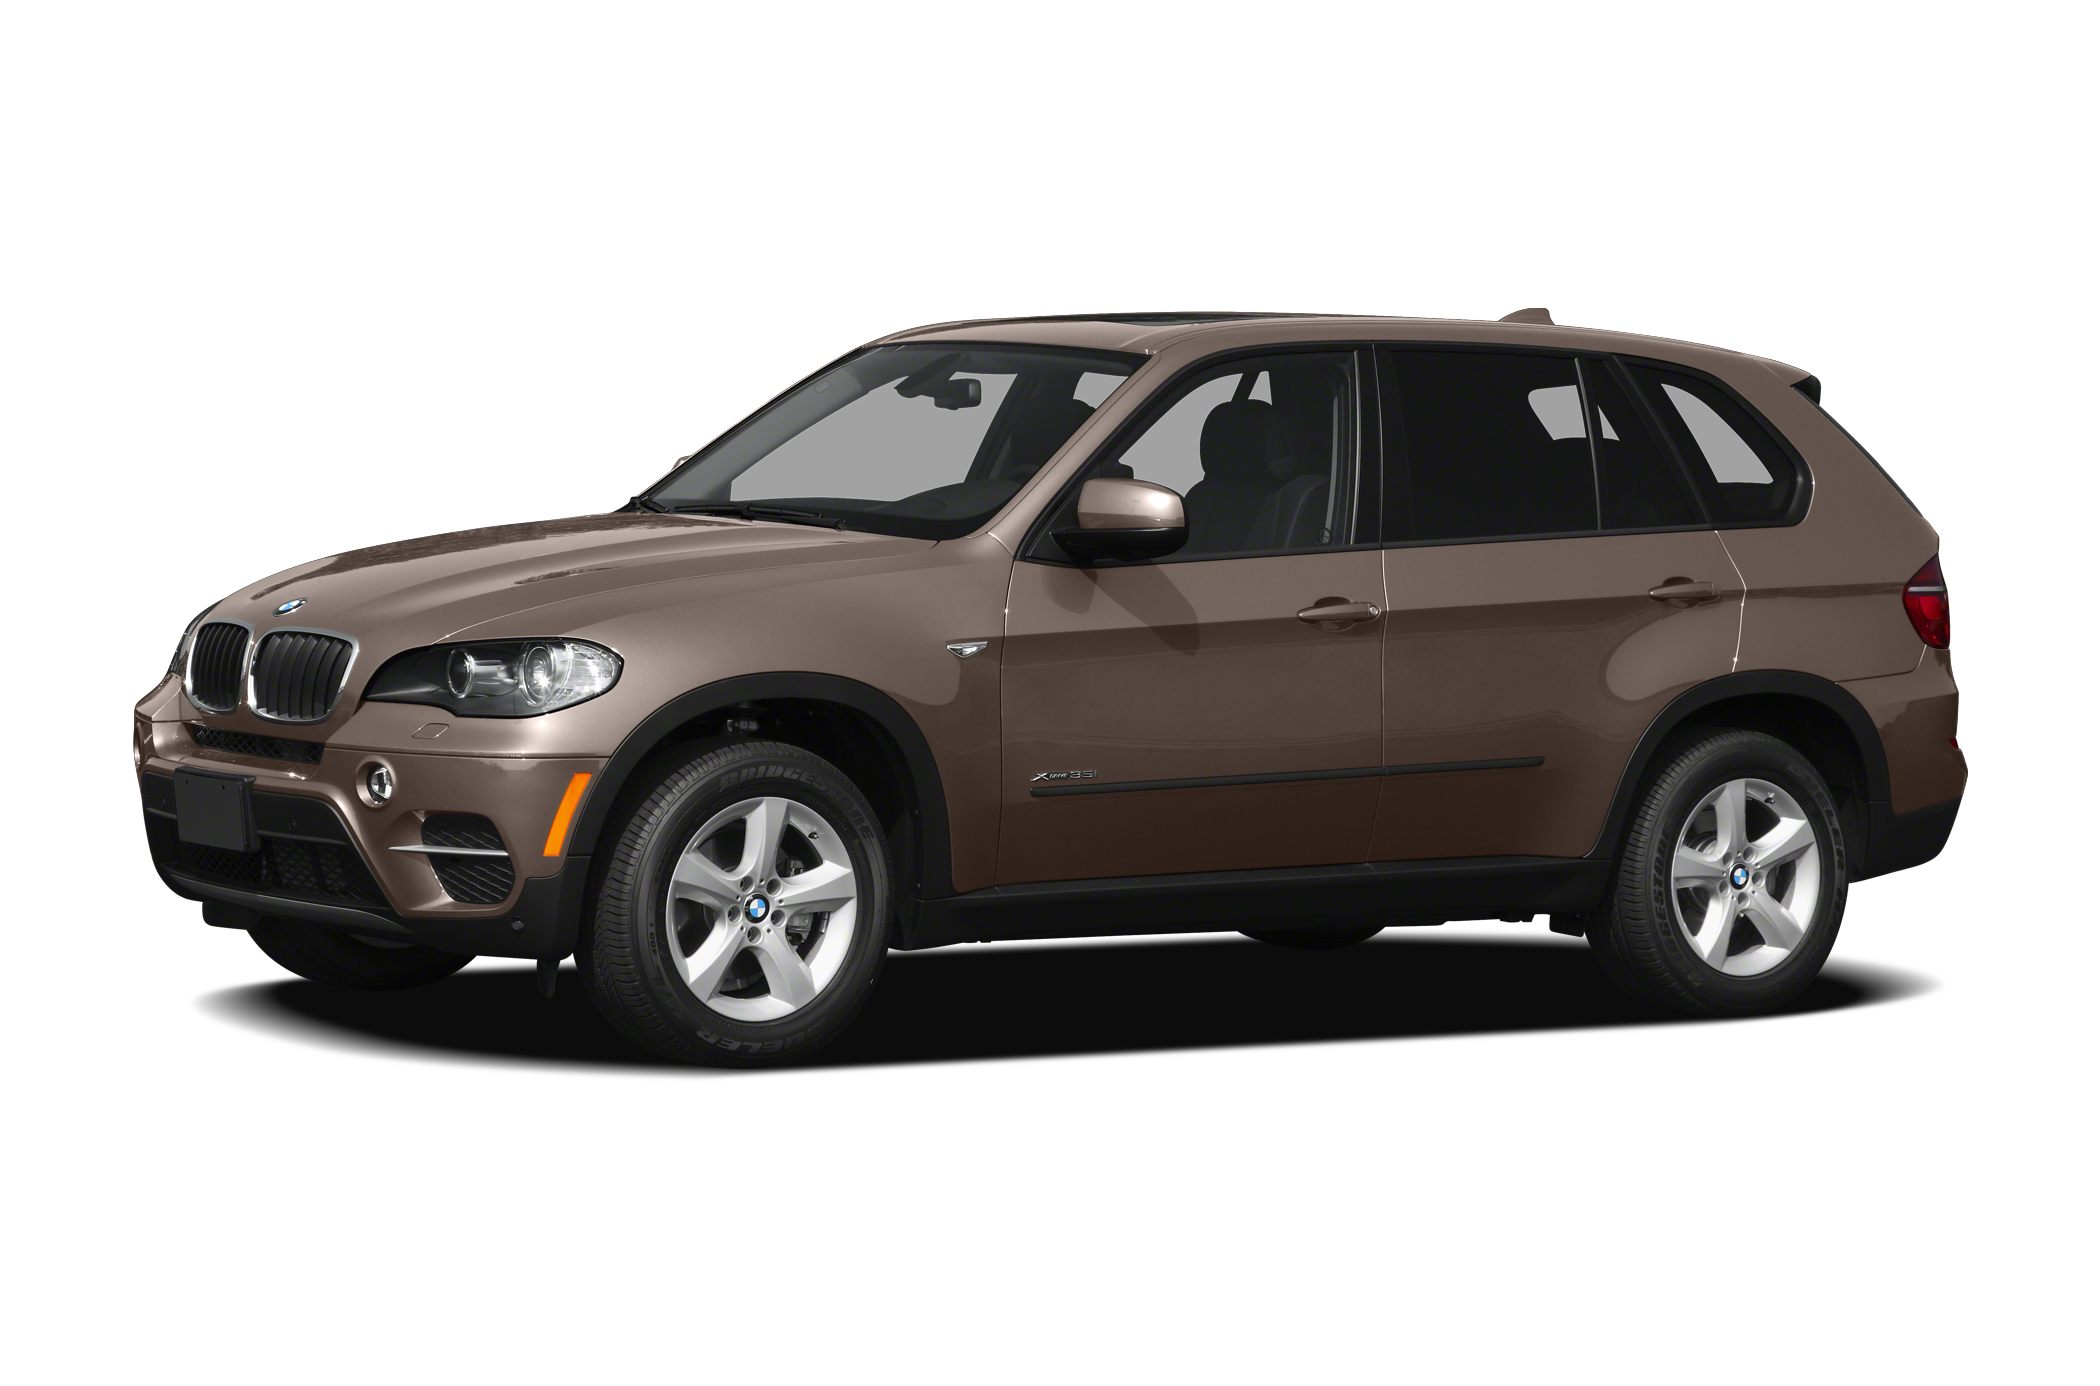 2011 BMW X5 XDrive50i SUV for sale in Anchorage for $37,499 with 37,515 miles.